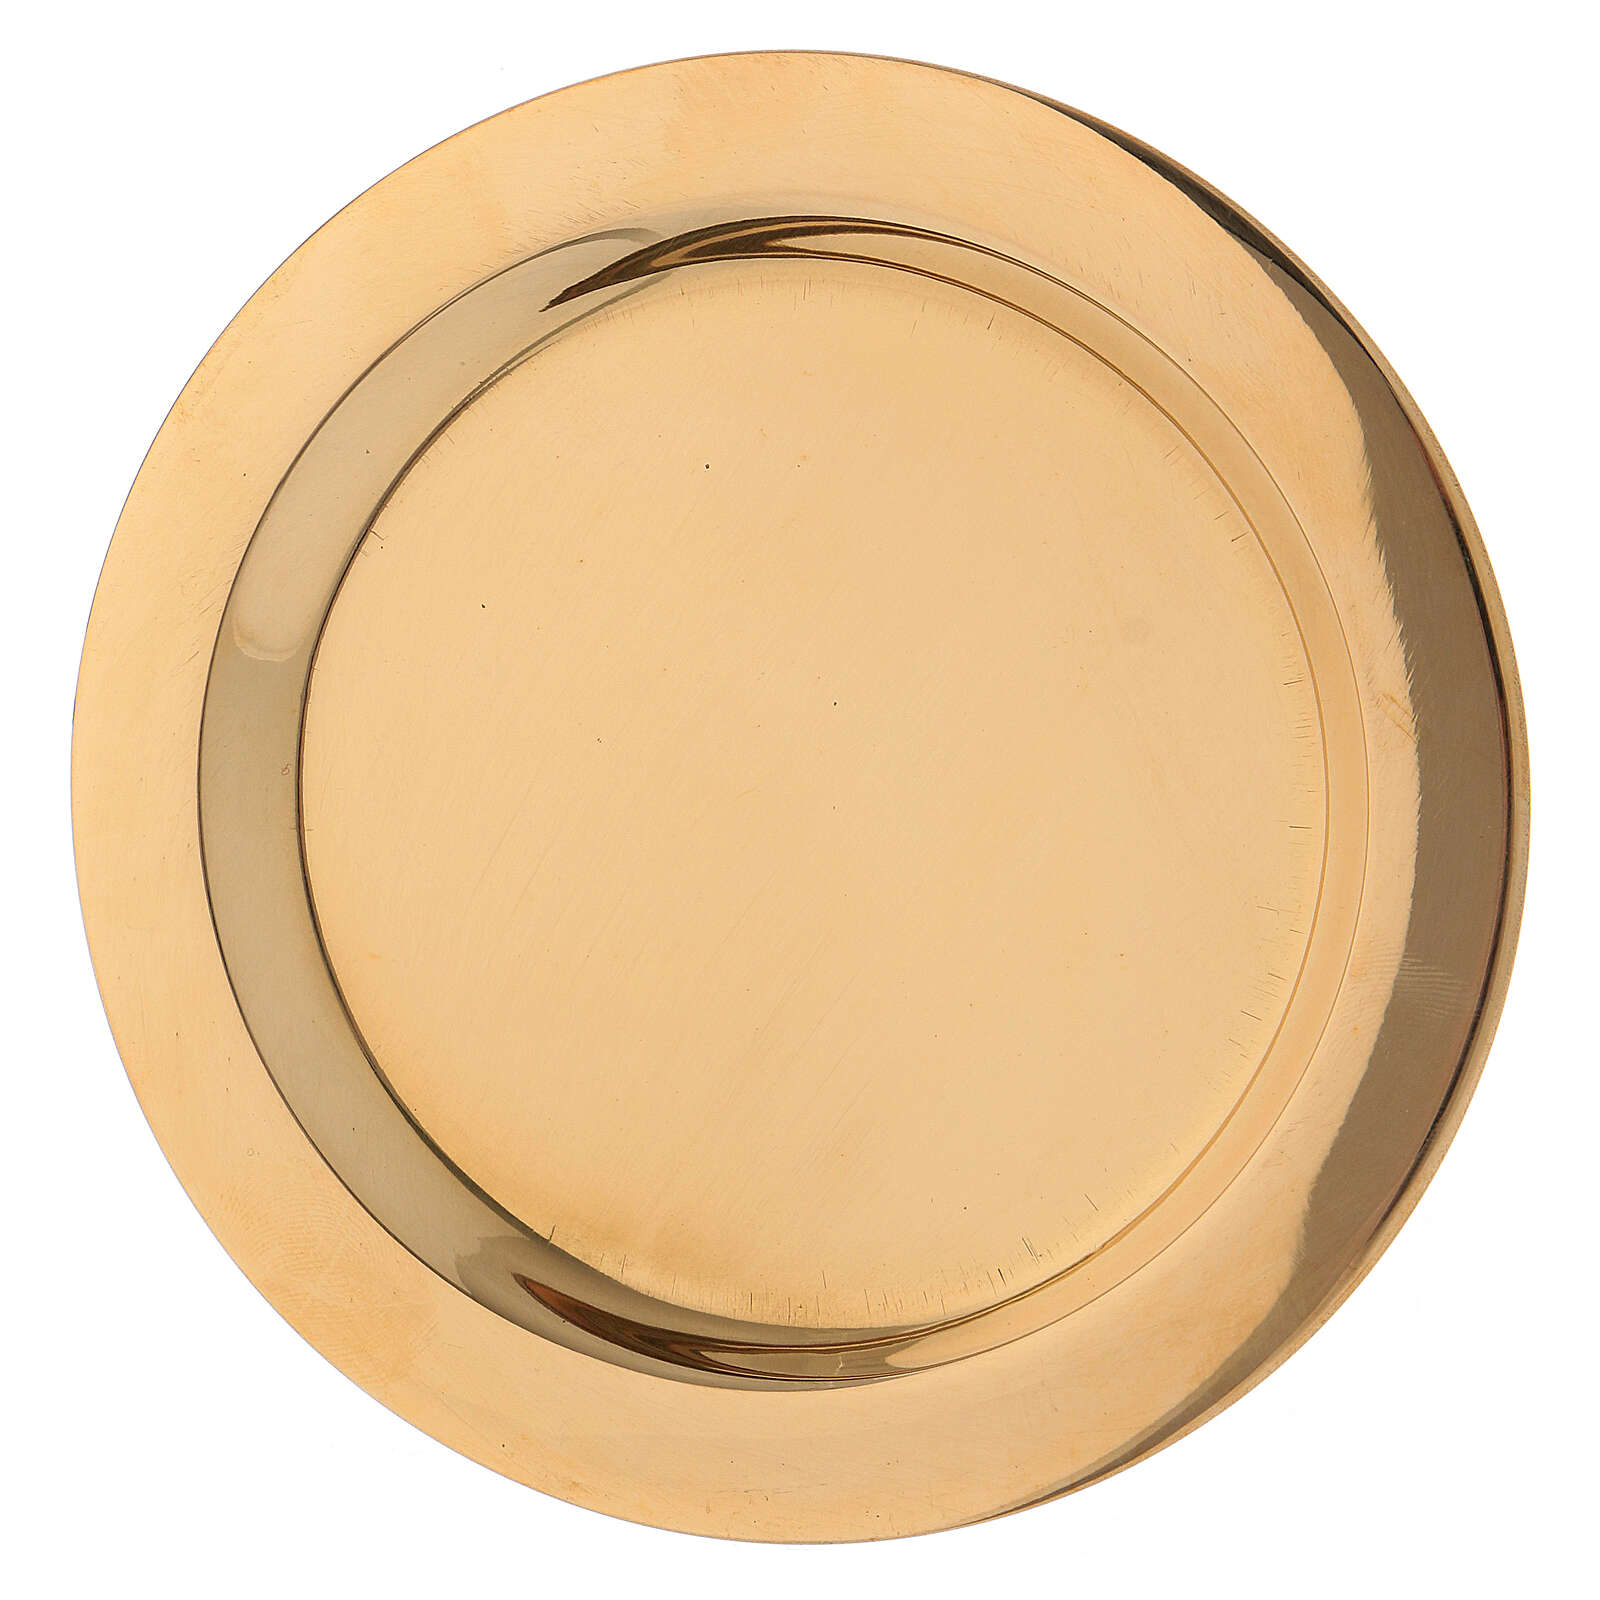 Candle holder plate in gold plated polished brass d. 4 1/4 in 3